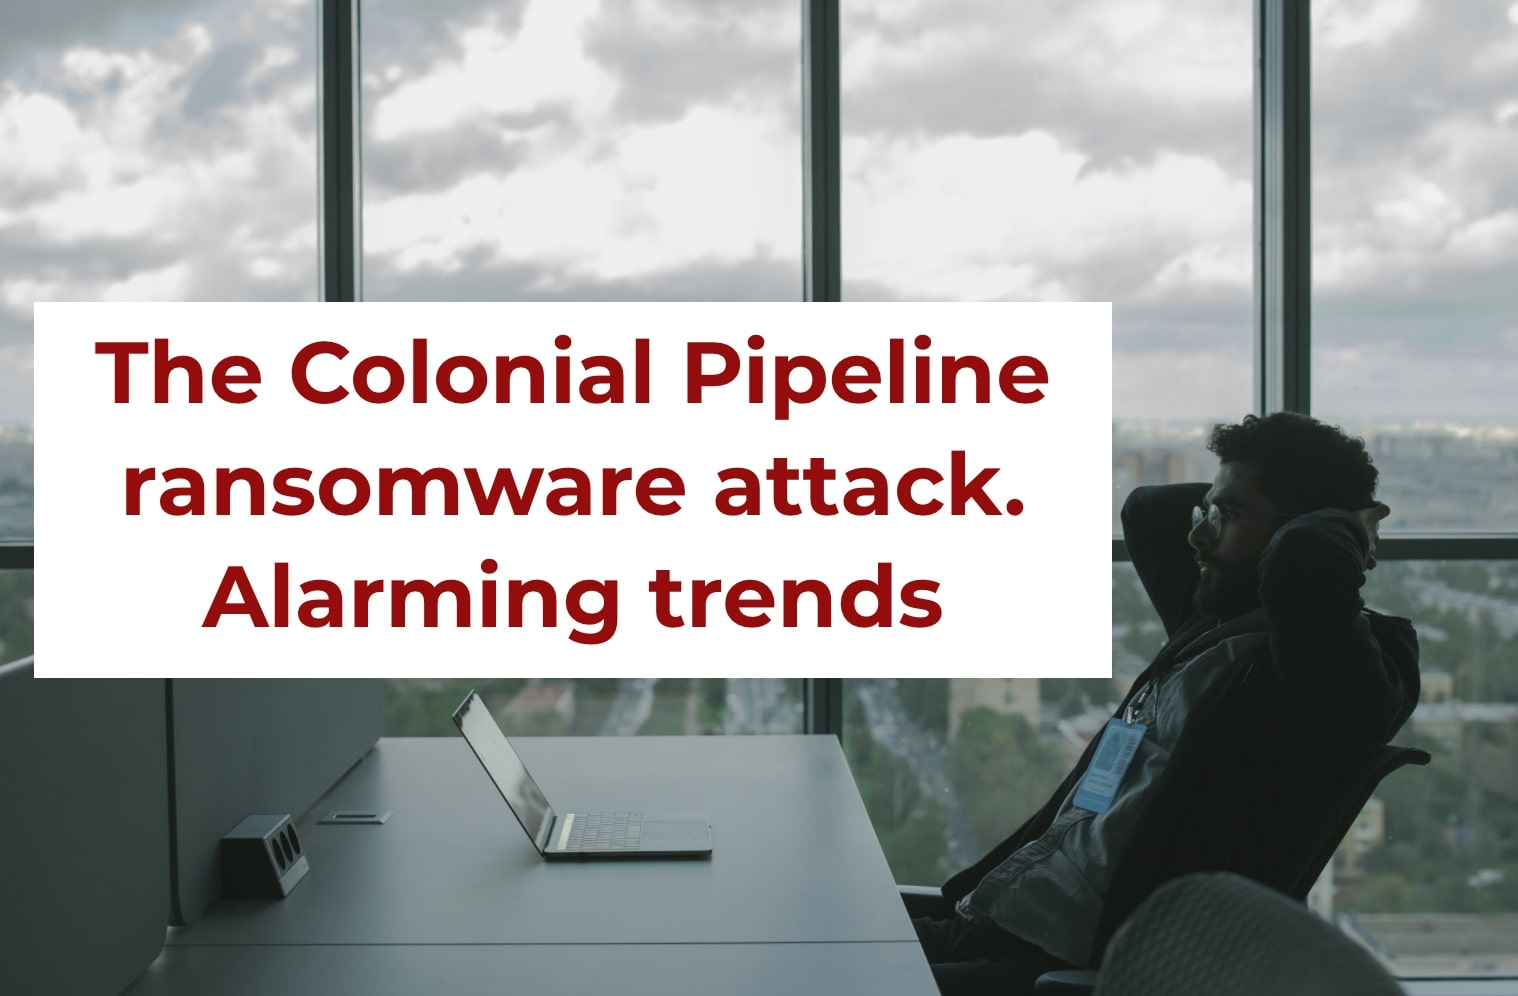 The Colonial Pipeline ransomware attack. Alarming trends